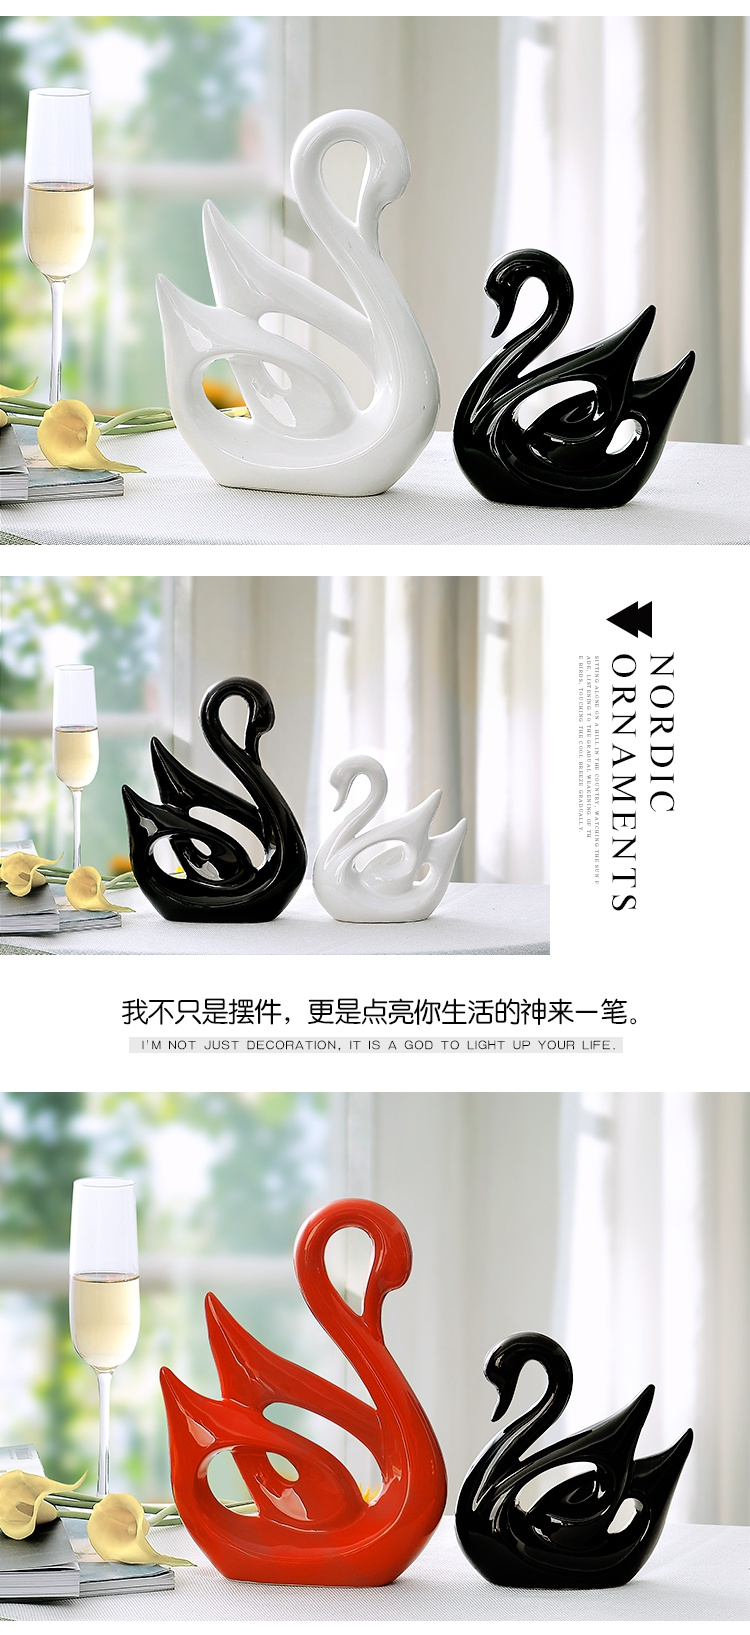 Gold swan furnishing articles wedding gift for wedding gifts ceramic household to decorate the sitting room TV ark, creative valentine 's day